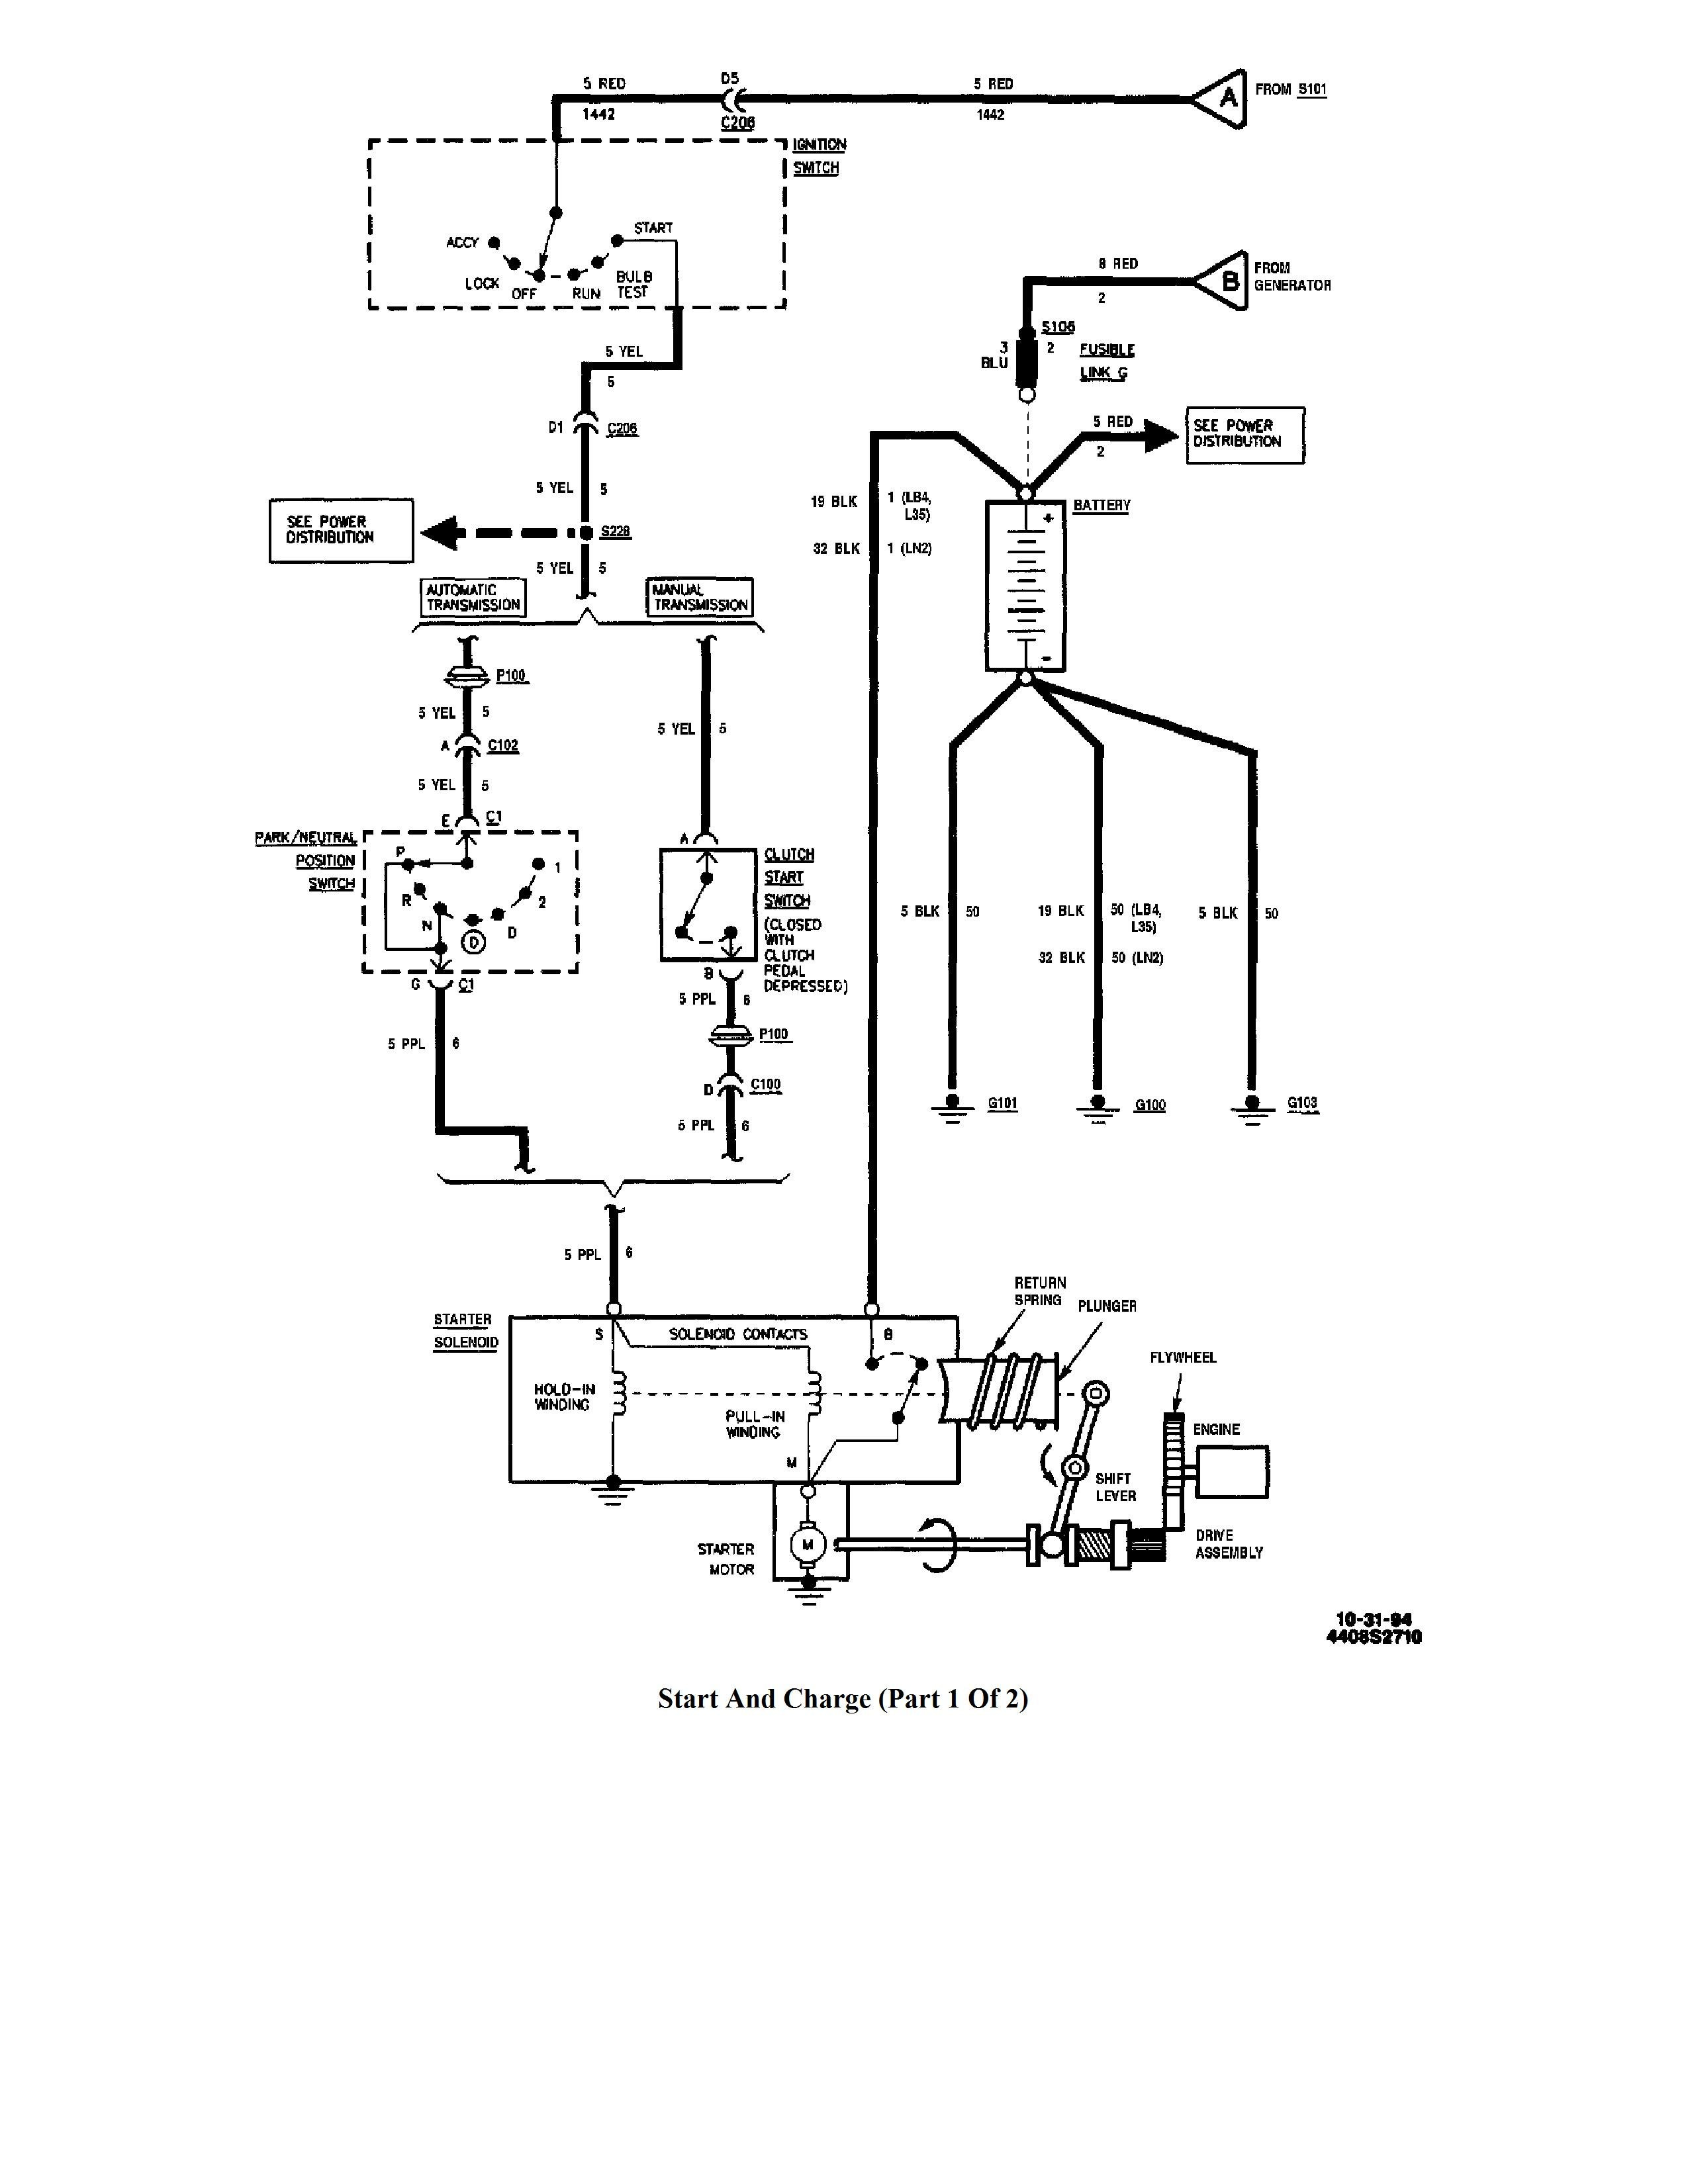 Diagram Chevy S10 Wiring Diagram Battery Full Version Hd Quality Diagram Battery Jswiring Giure It